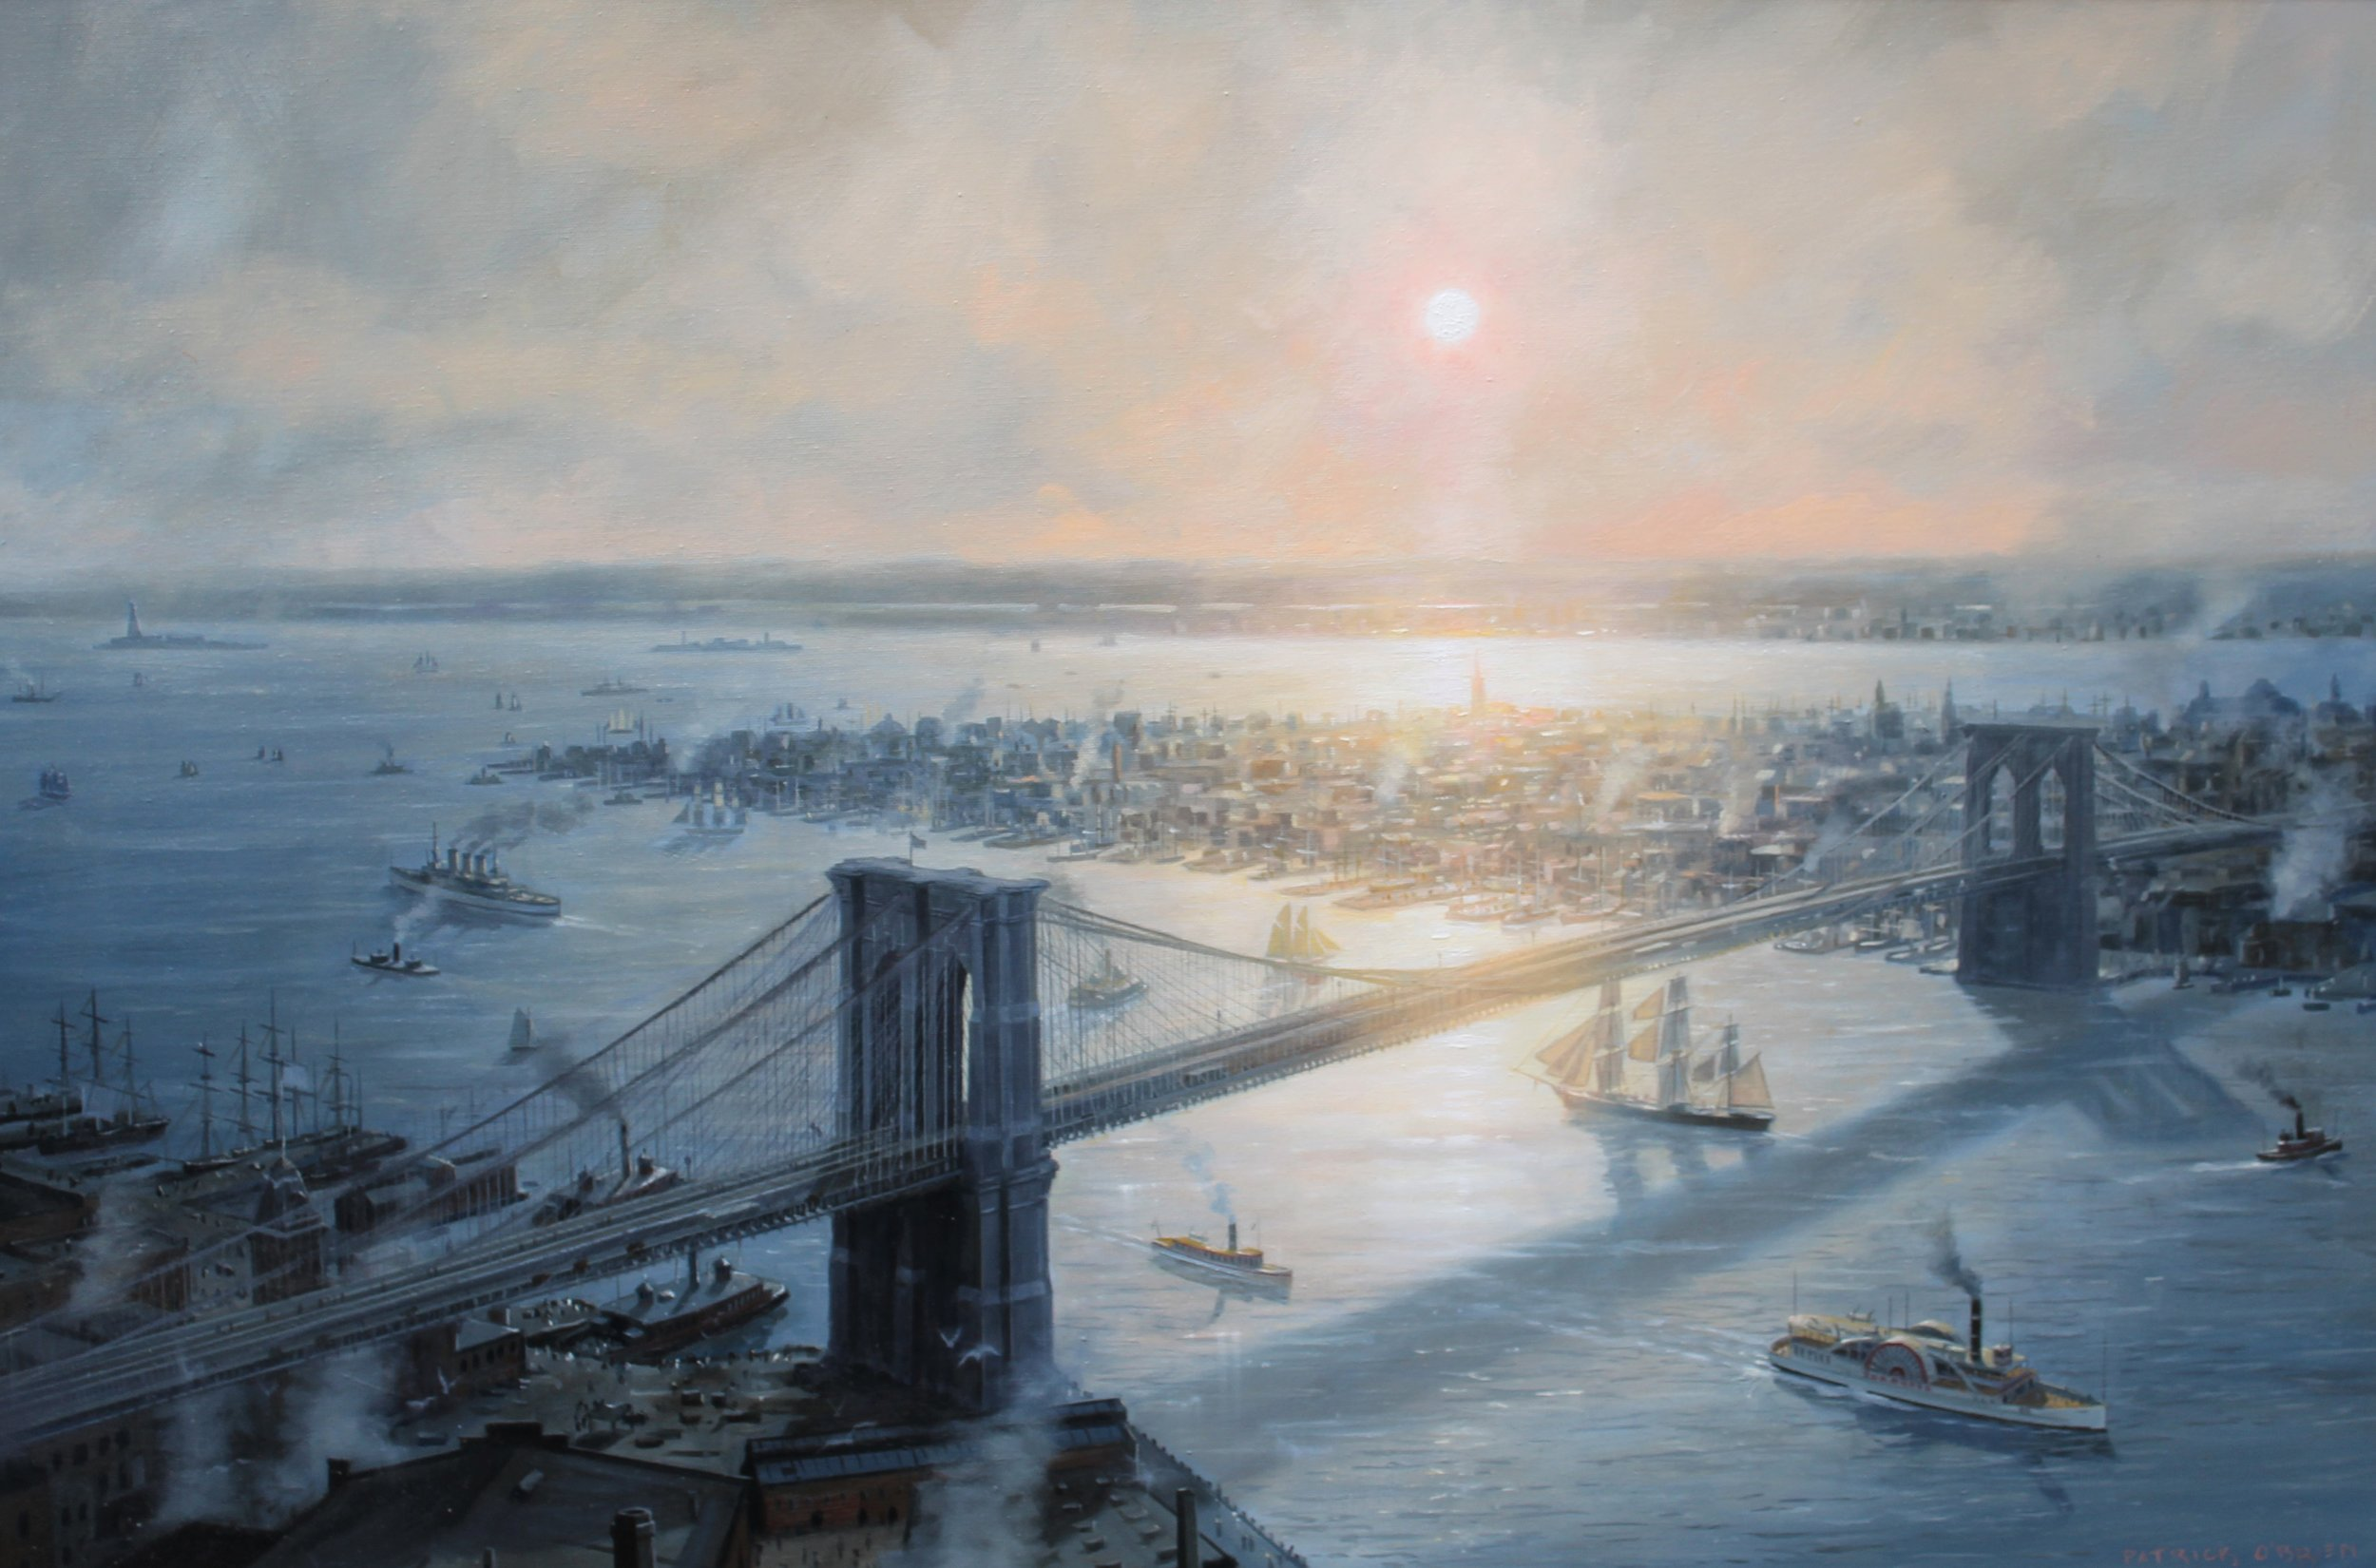 PATRICK O'BRIEN    Manhattan c. 1900    The painting presents a view of old New York from a point above Brooklyn, looking towards Manhattan. New York was a horizontal city in those pre-elevator days. The newly completed Brooklyn Bridge towered over the city. In this view, the tall spire of Trinity Church is at center, in the glare of the sun. It is still there to this day, but can be difficult to see among the skyscrapers that have sprung up around it. Liberty Island and Ellis Island are seen in the distance at left. A paddlewheel steamship heads upriver at right, while a windjammer eases under the bridge, with its uppermost sails and masts lowered to the deck. At left, a modern battleship has left the Brooklyn Navy Yard and is headed out to sea, passing an old-fashioned monitor-style Navy warship, probably on its last cruise before heading to the scrapyard.  24 x 36 inches